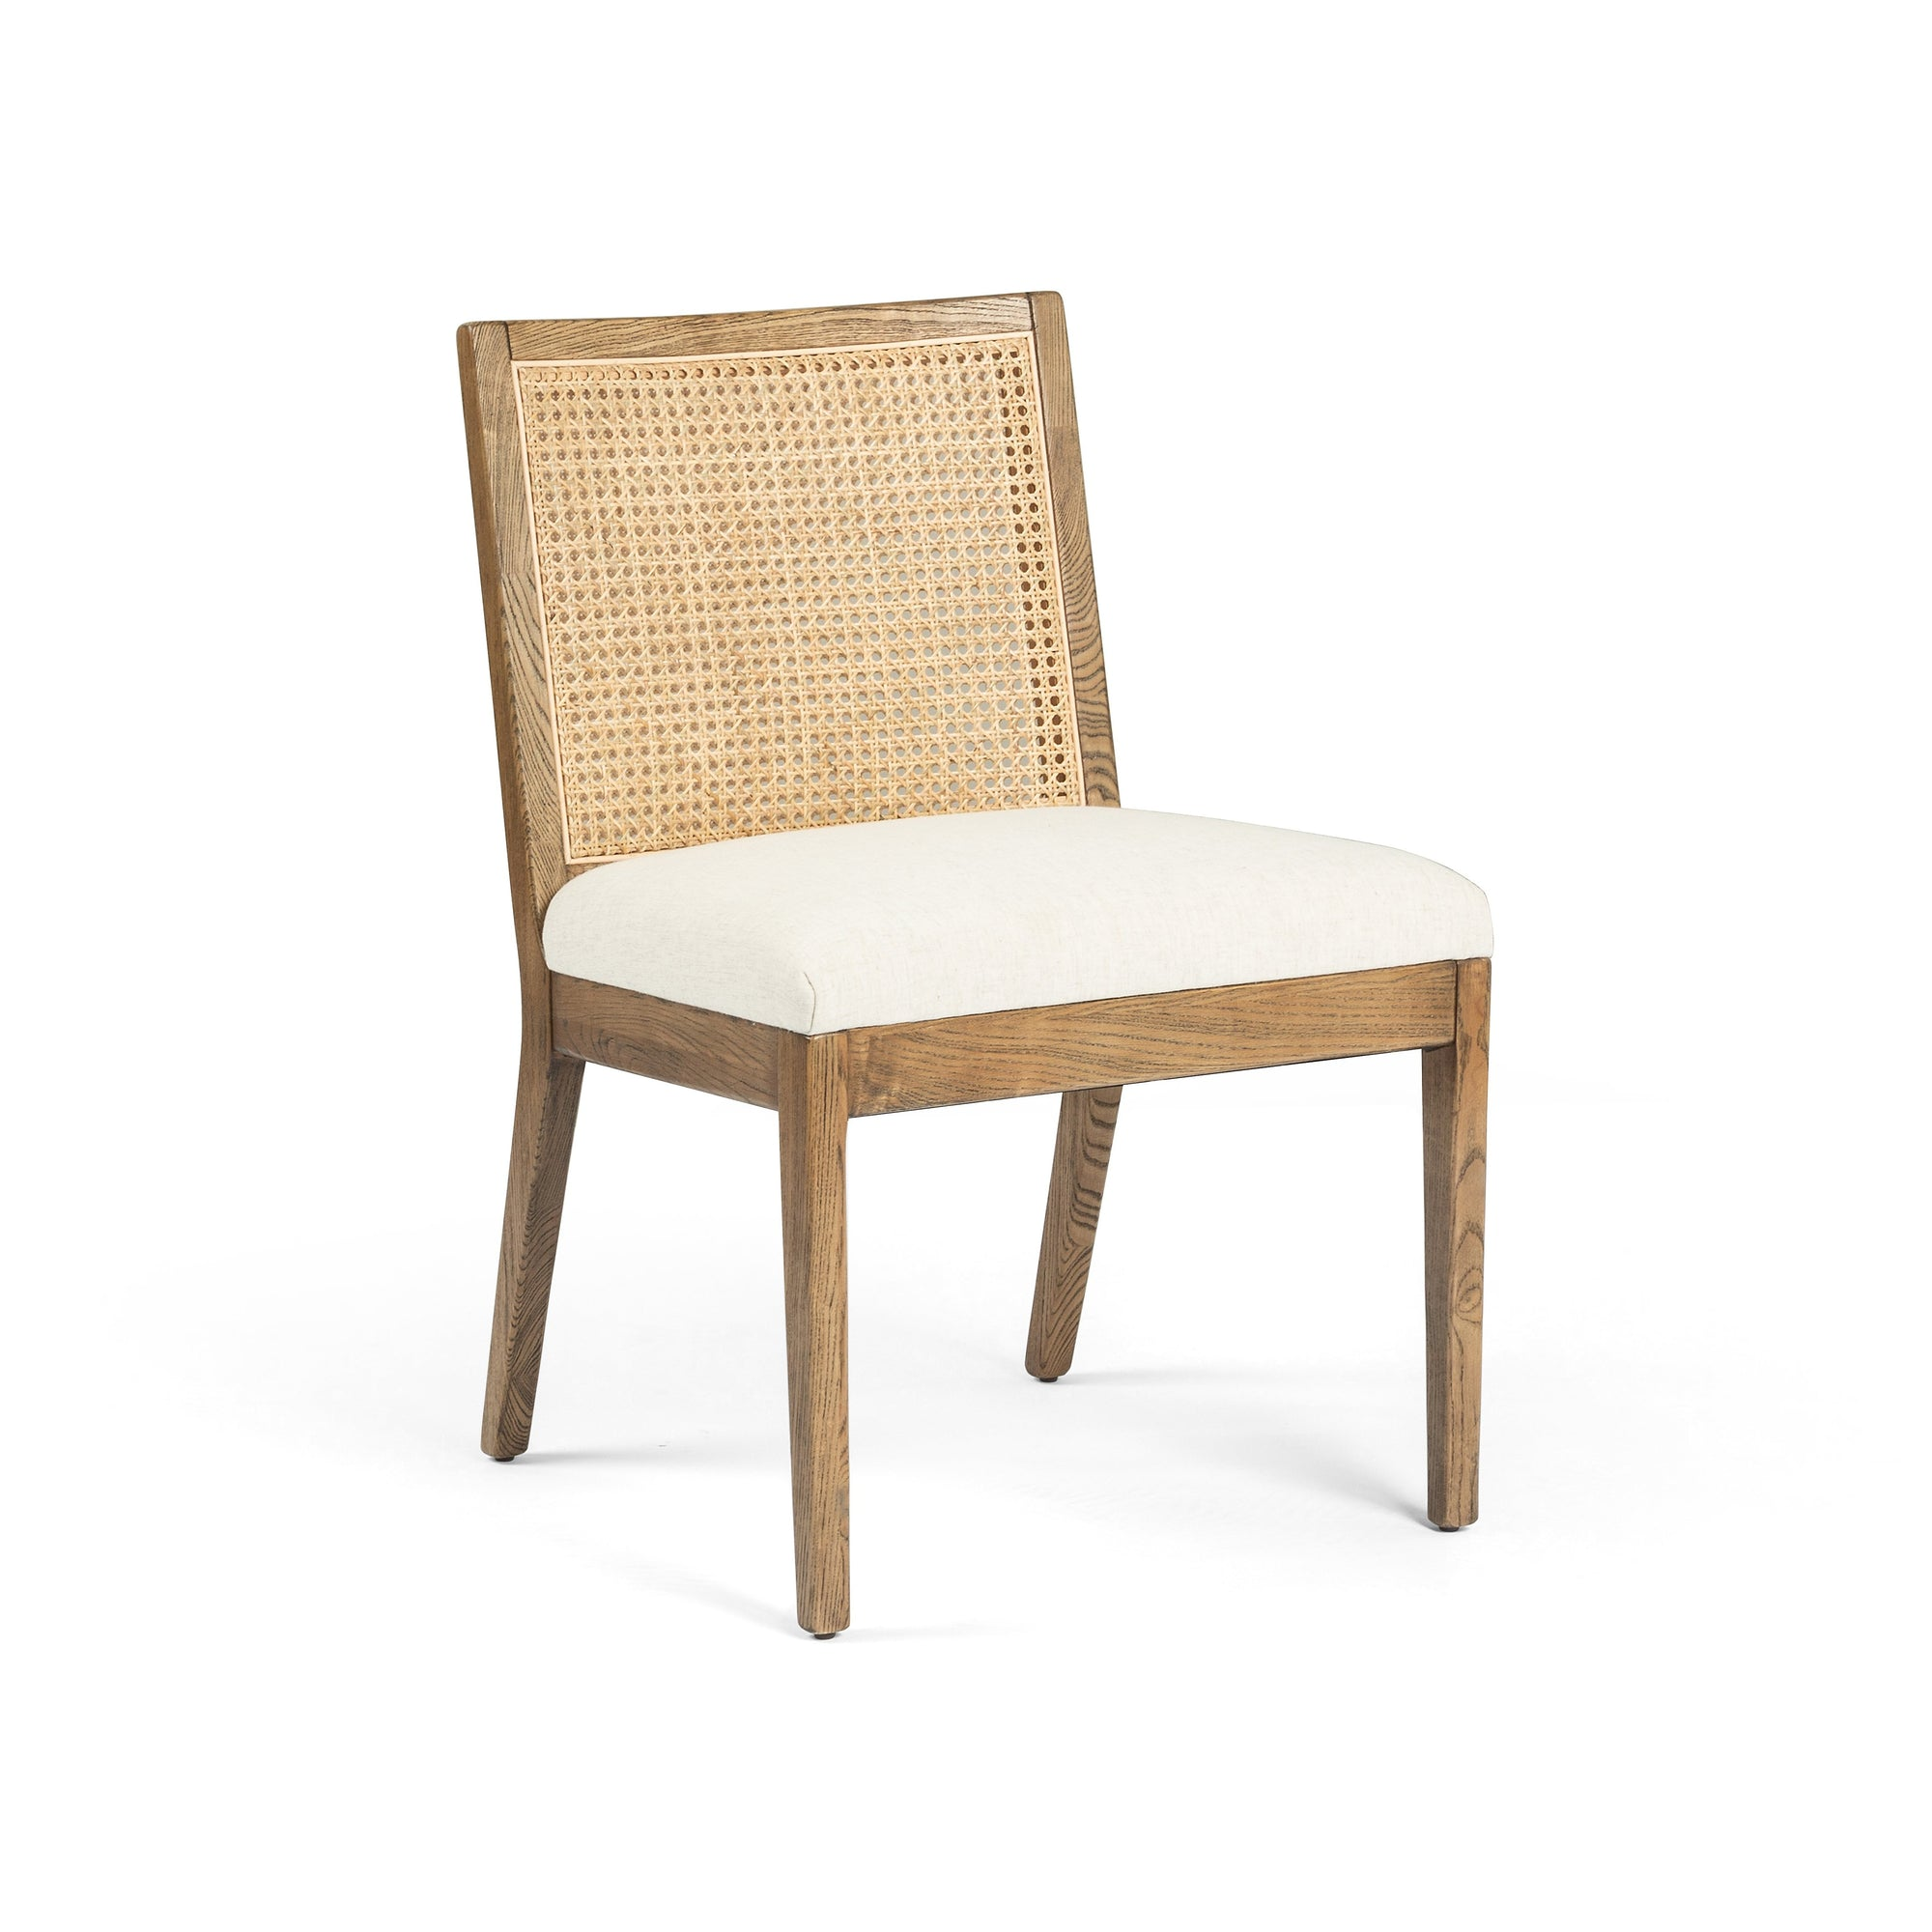 Anita Armless Dining chair - Rug & Weave